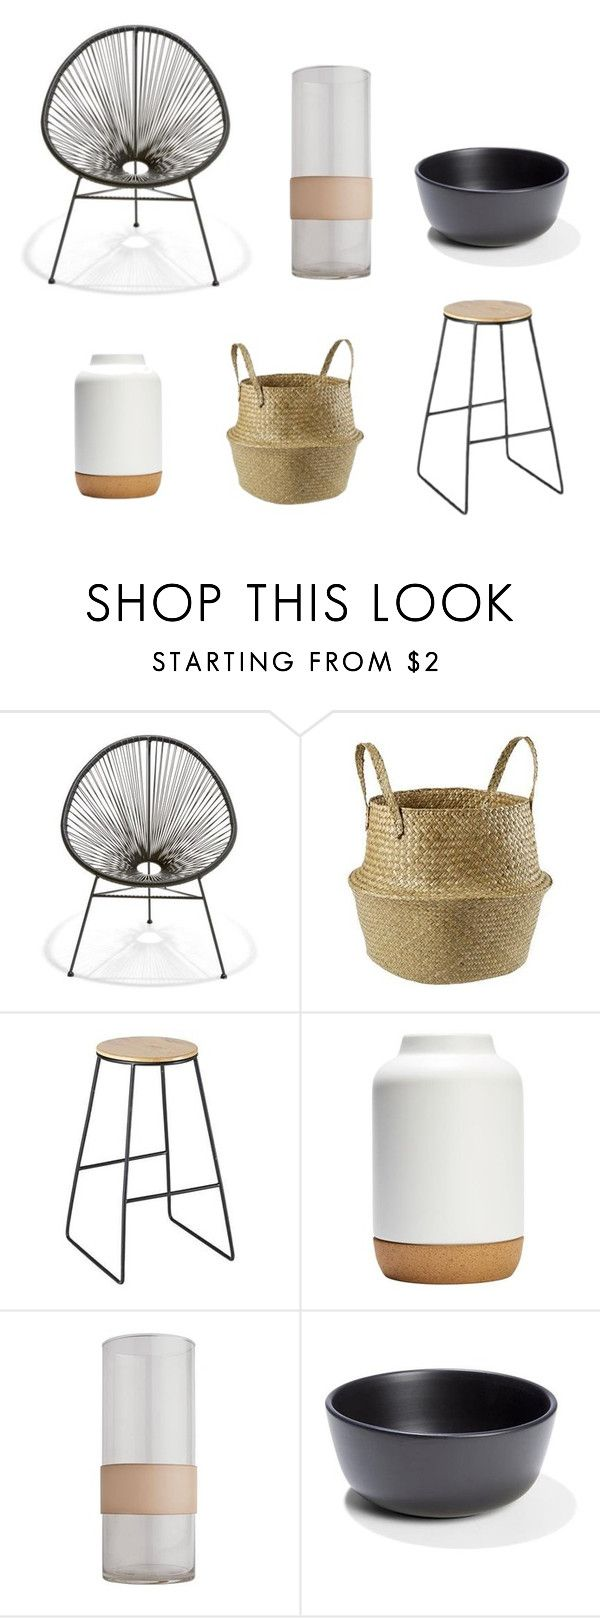 """""""// KMART WISH LIST"""" by houseamour on Polyvore featuring interior, interiors, interior design, home, home decor and interior decorating"""